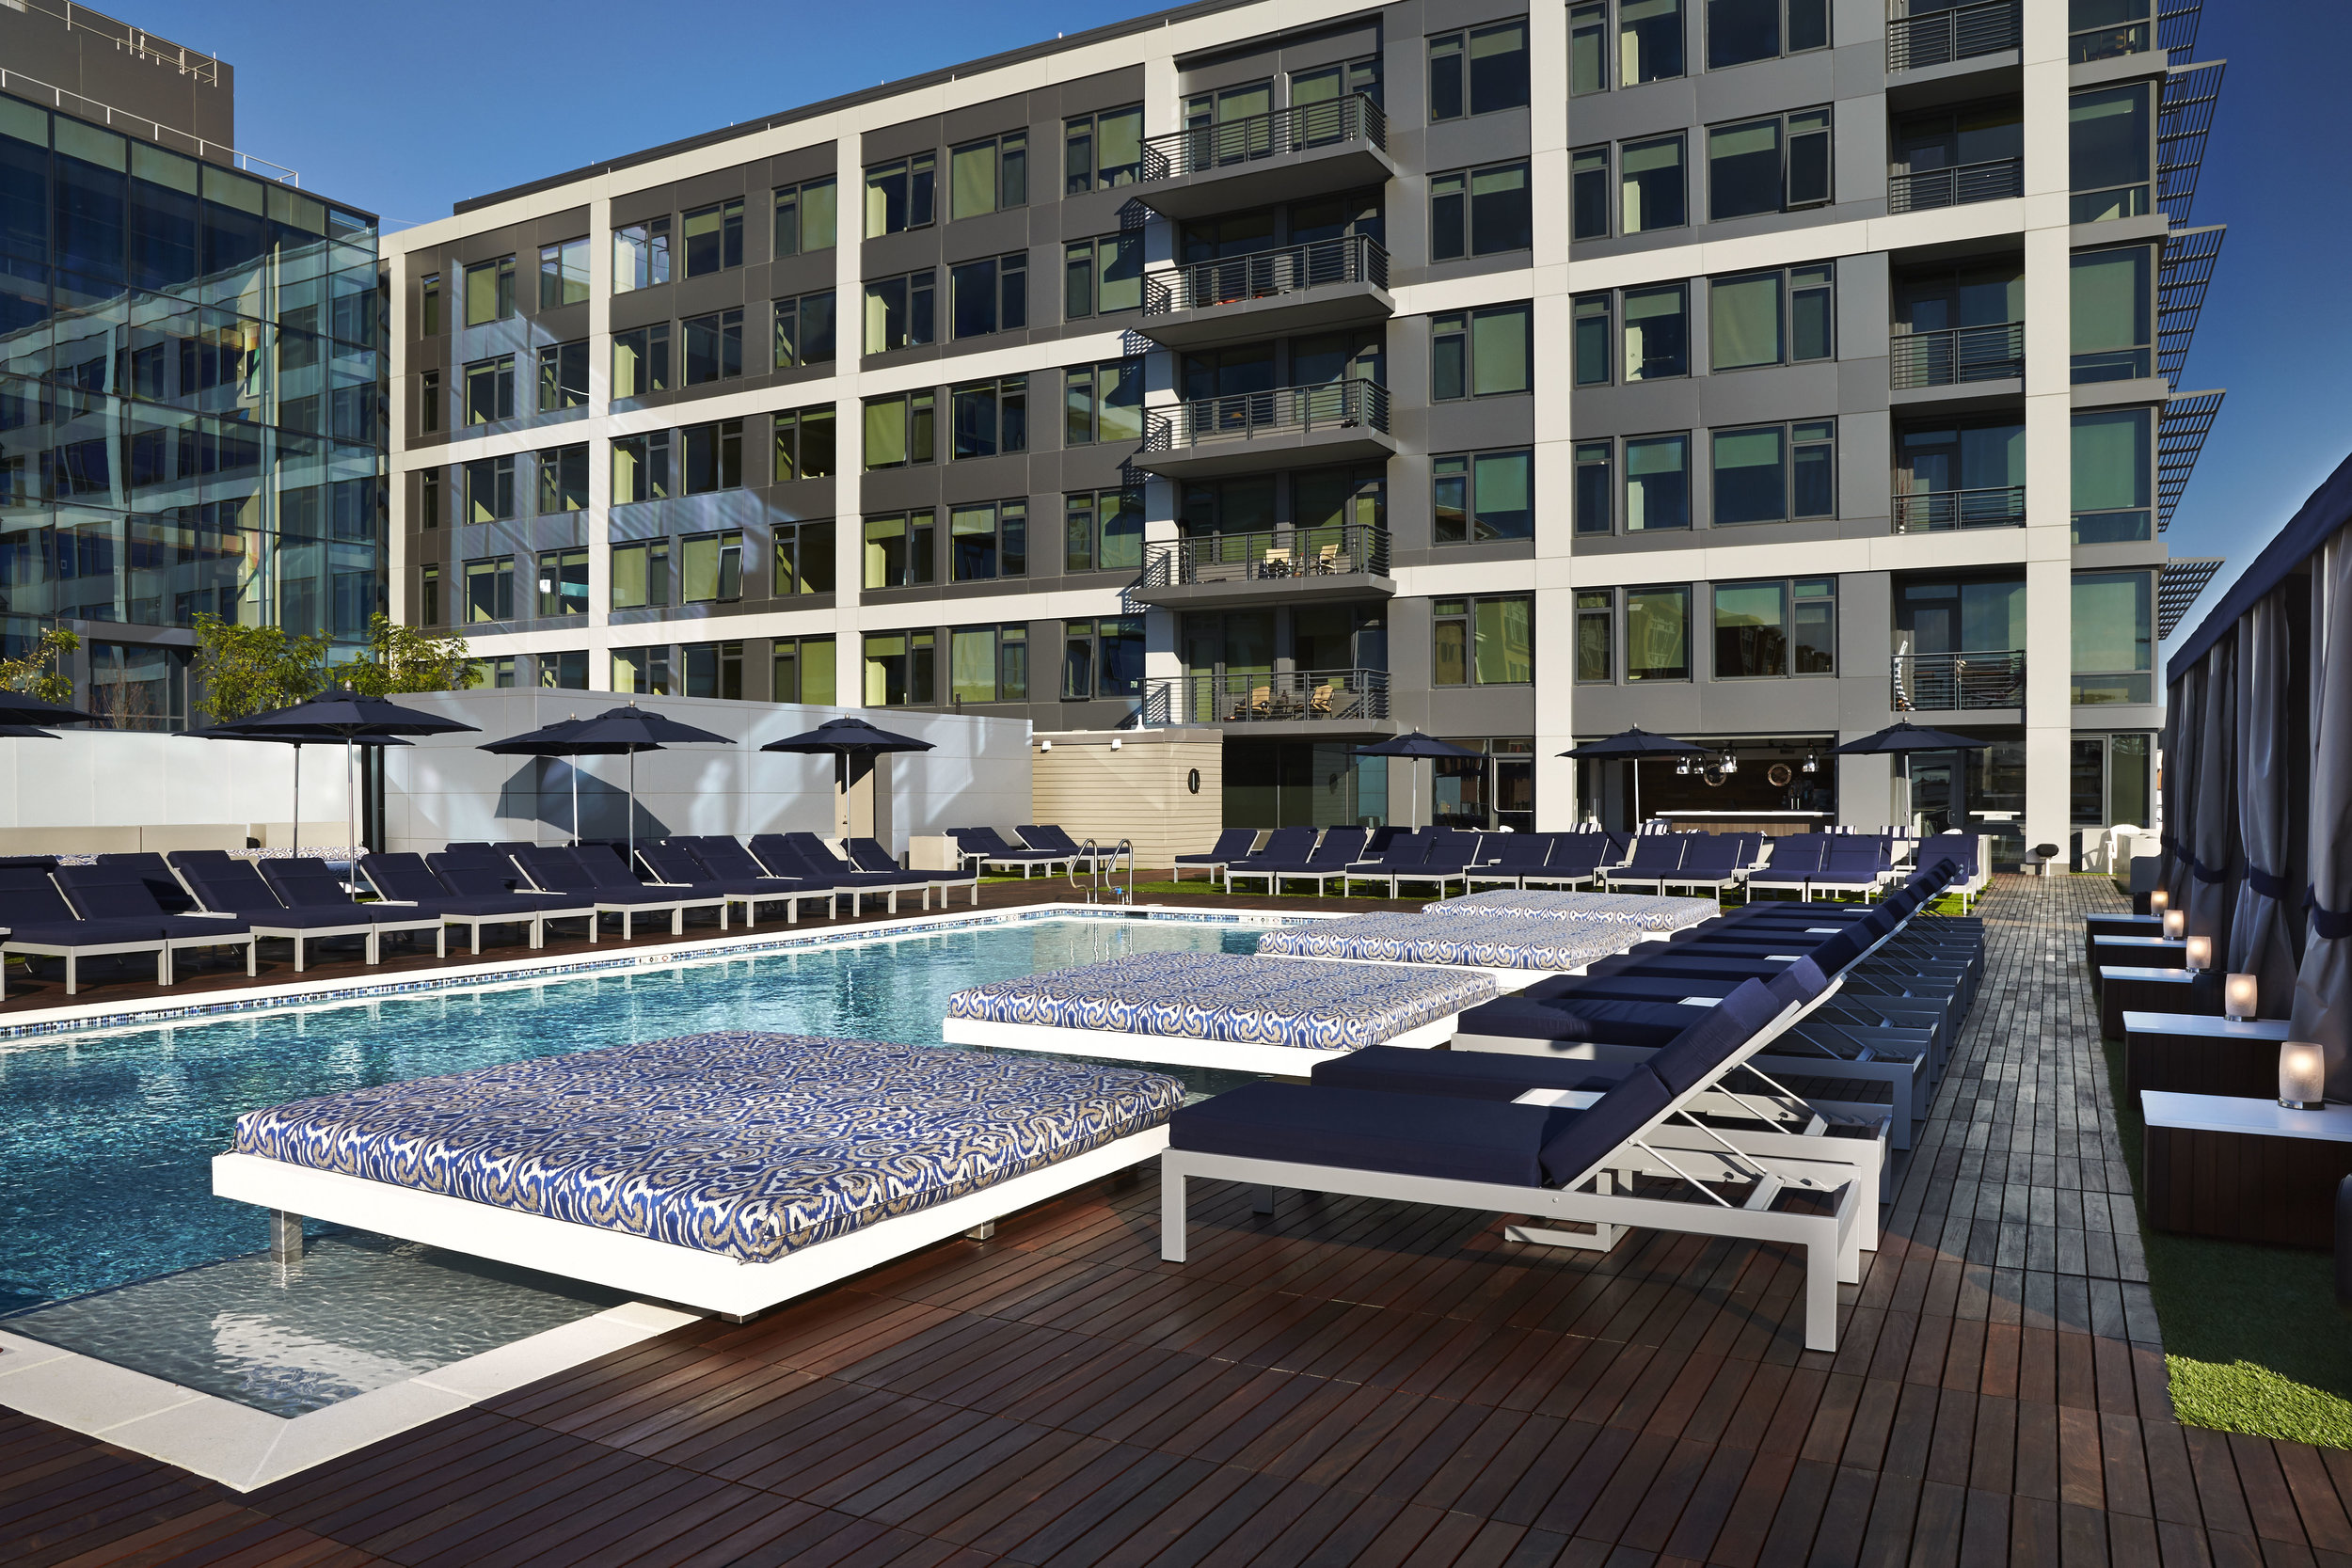 Penthouse Pool Club @ Vida Fitness , WA, DC